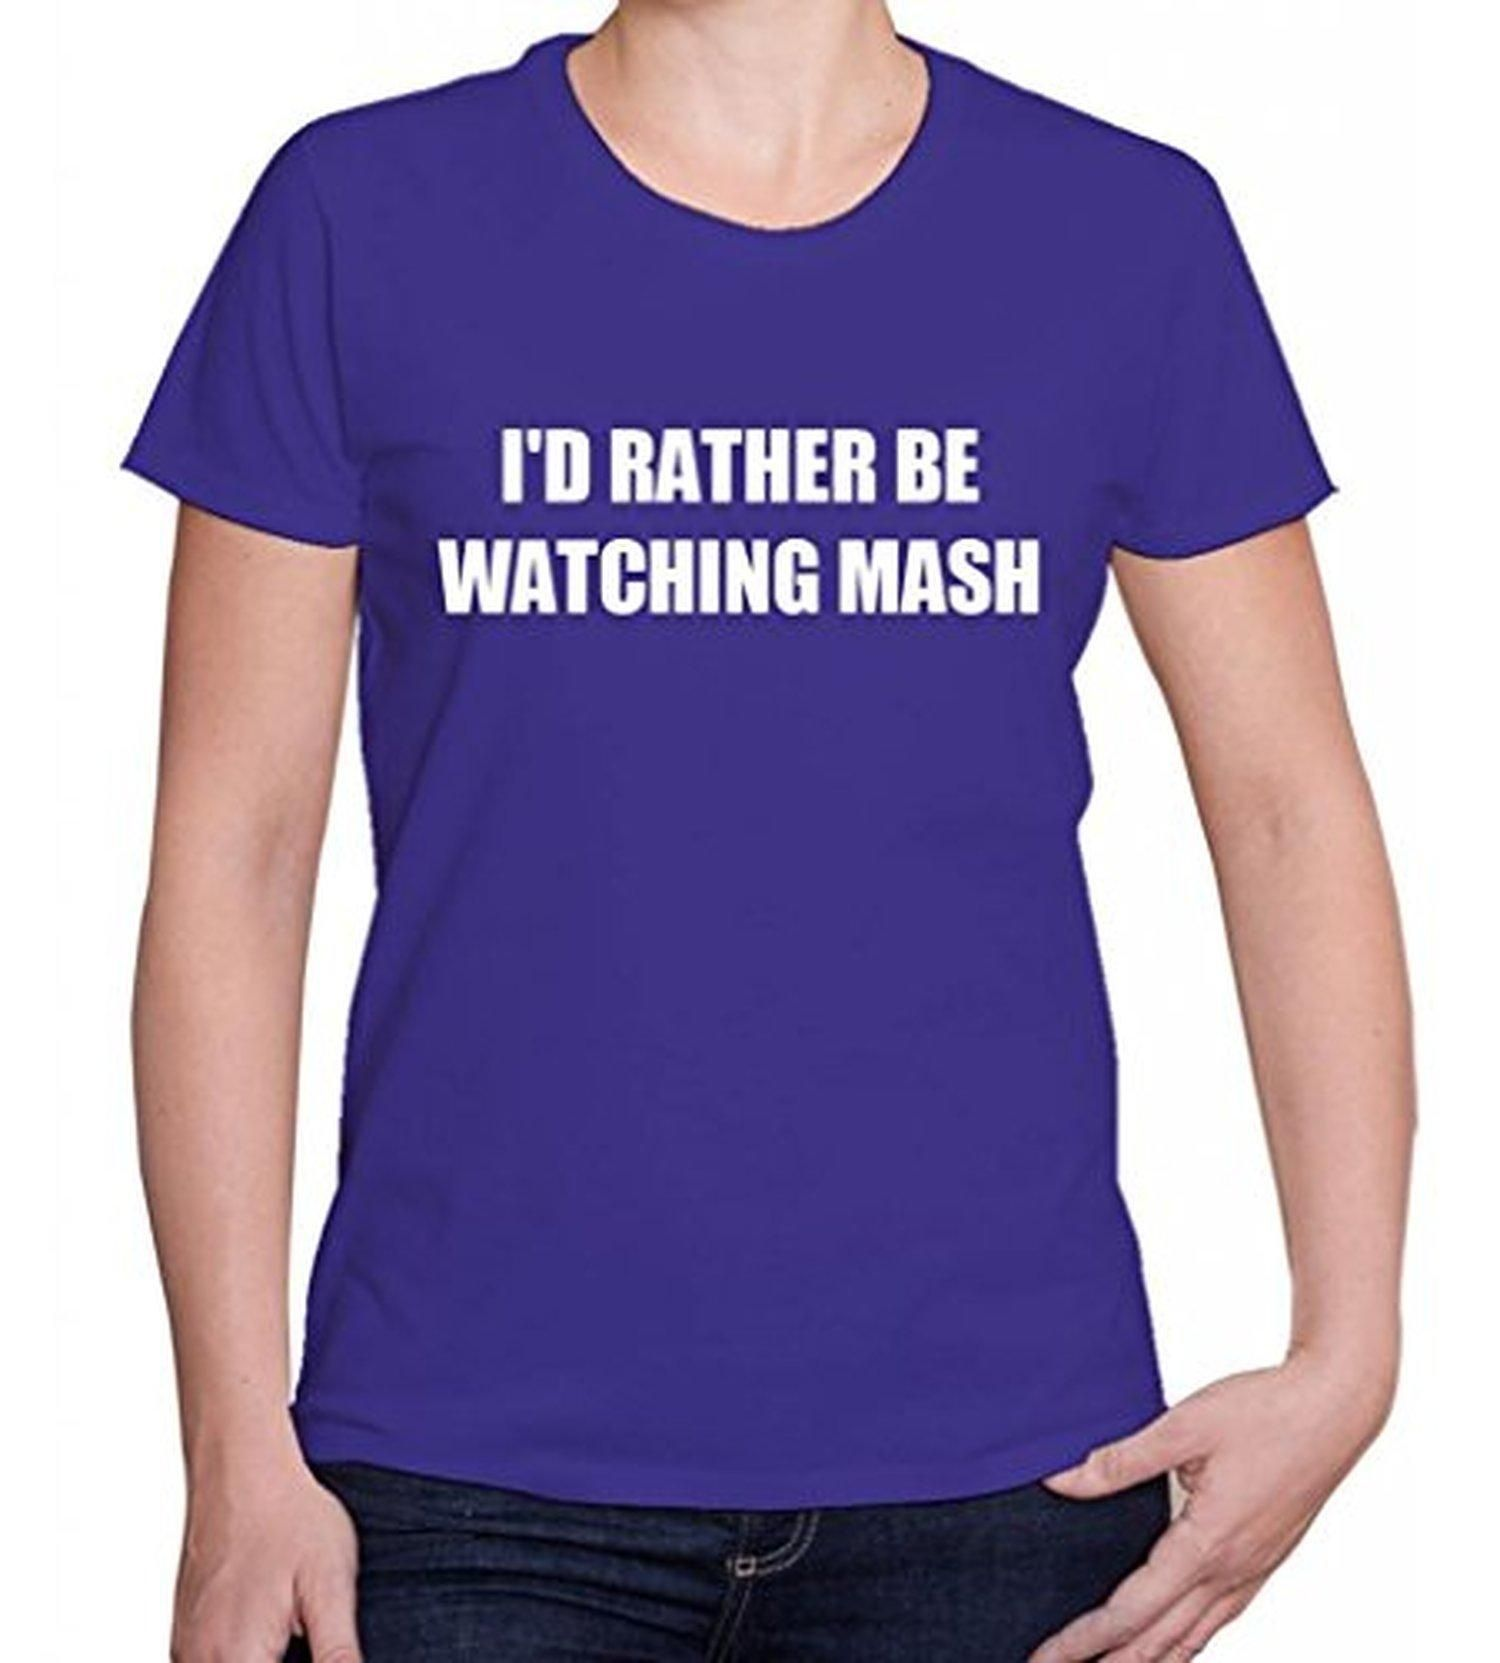 I'D RATHER BE WATCHING MASH Humor Fun Women's Short Sleve T Shirt Top Tee Shirt - Brought to you by Avarsha.com